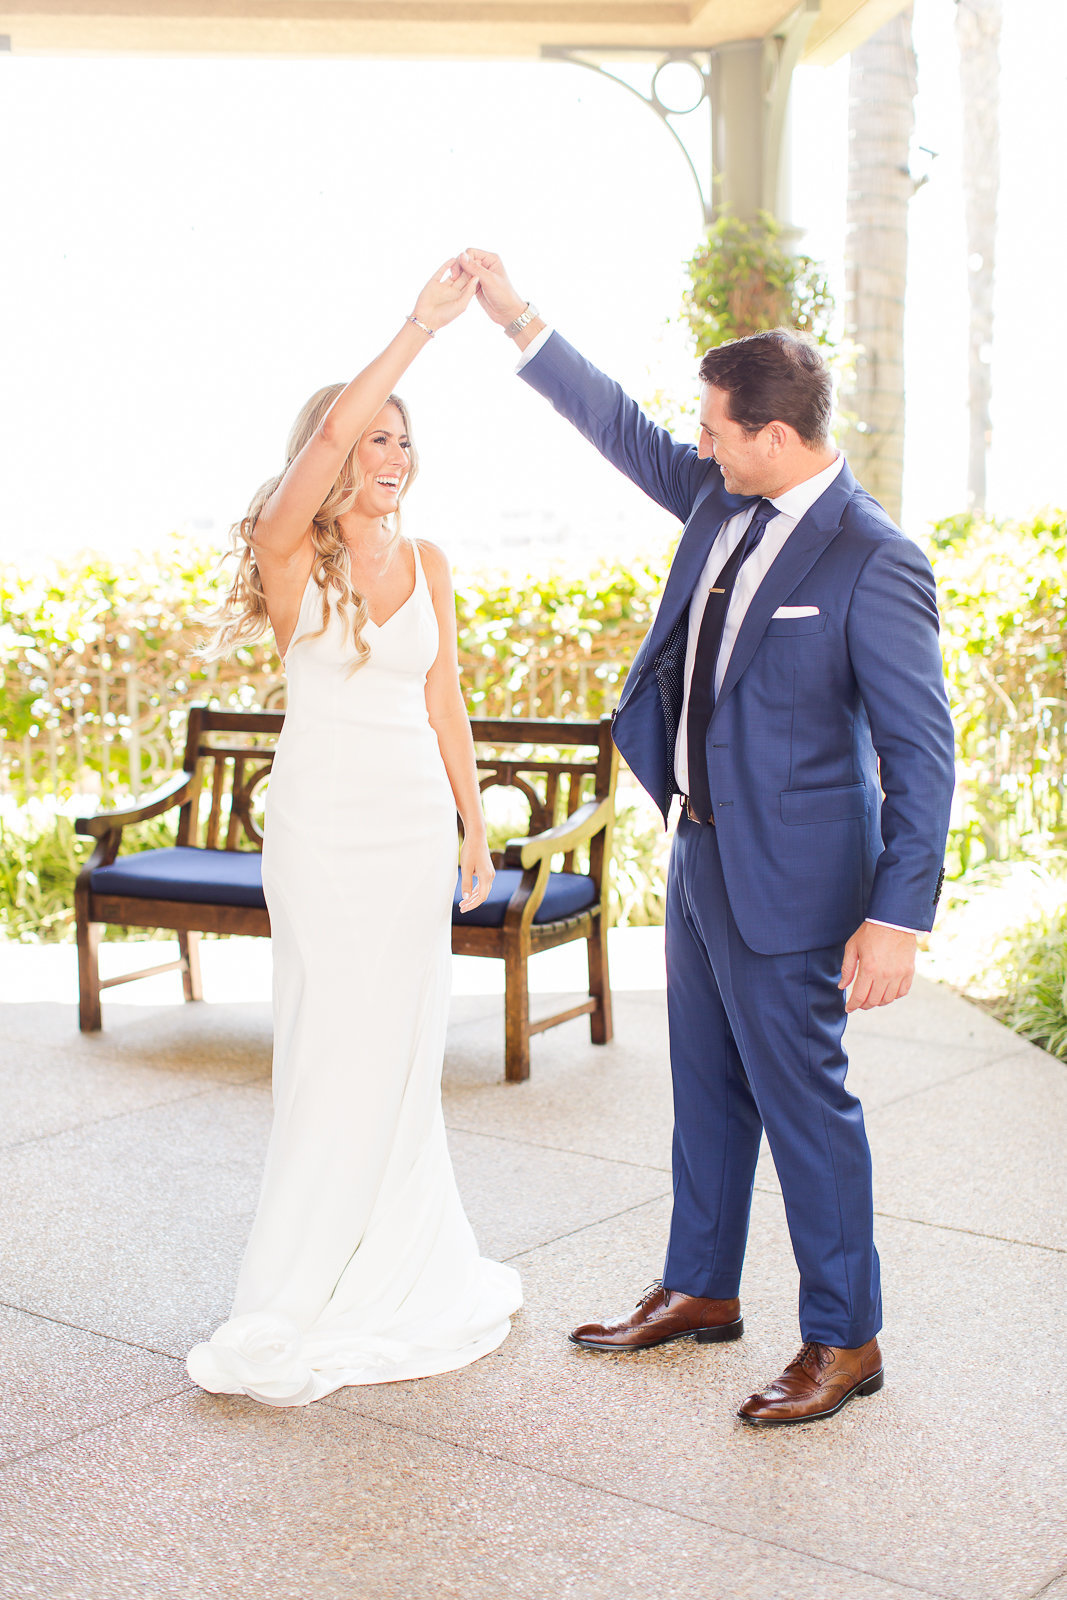 Newport Beach Caliornia Destination Wedding Theresa Bridget Photography-19